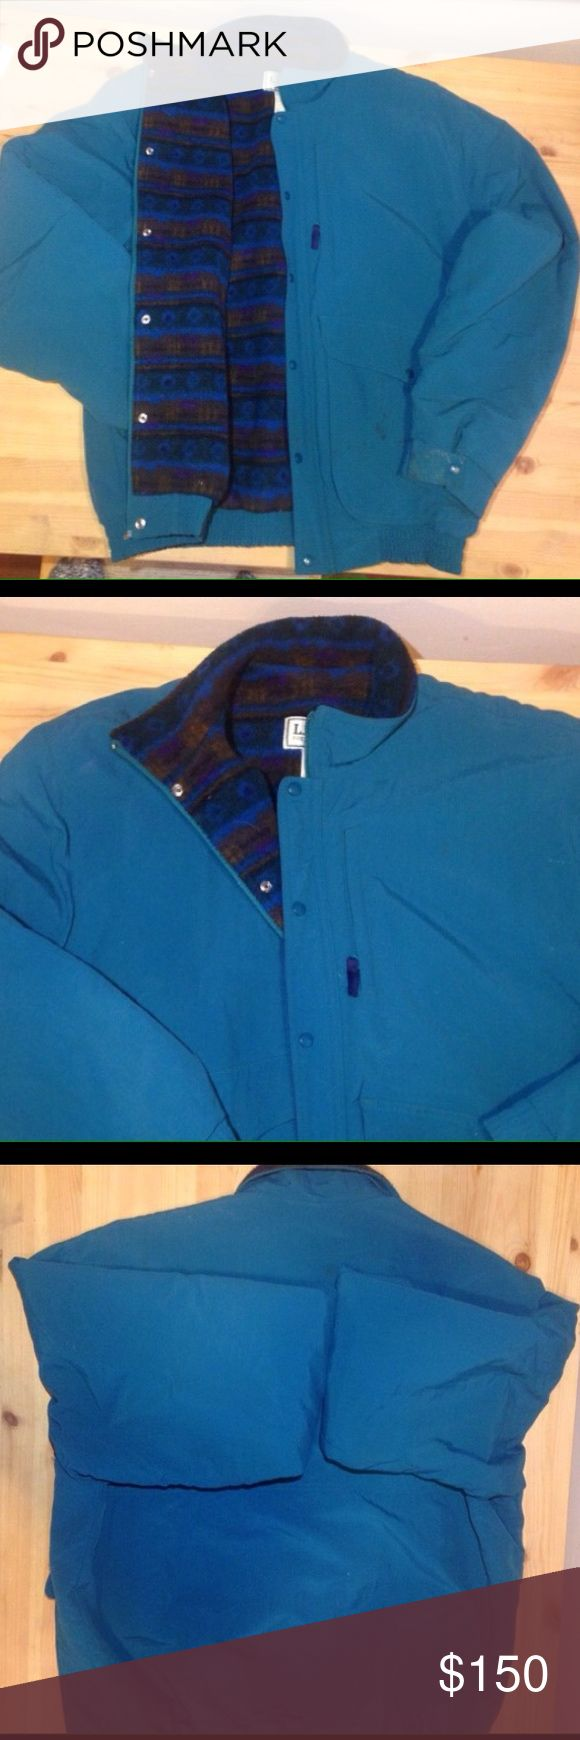 Men's winter coat size large LL Bean Men's coat size large fleece lined winter coat by LL Bean teal blue w THINSULATED lining. No rips-- no longer available online. Great for even negative temps! L.L. Bean Jackets & Coats Ski & Snowboard